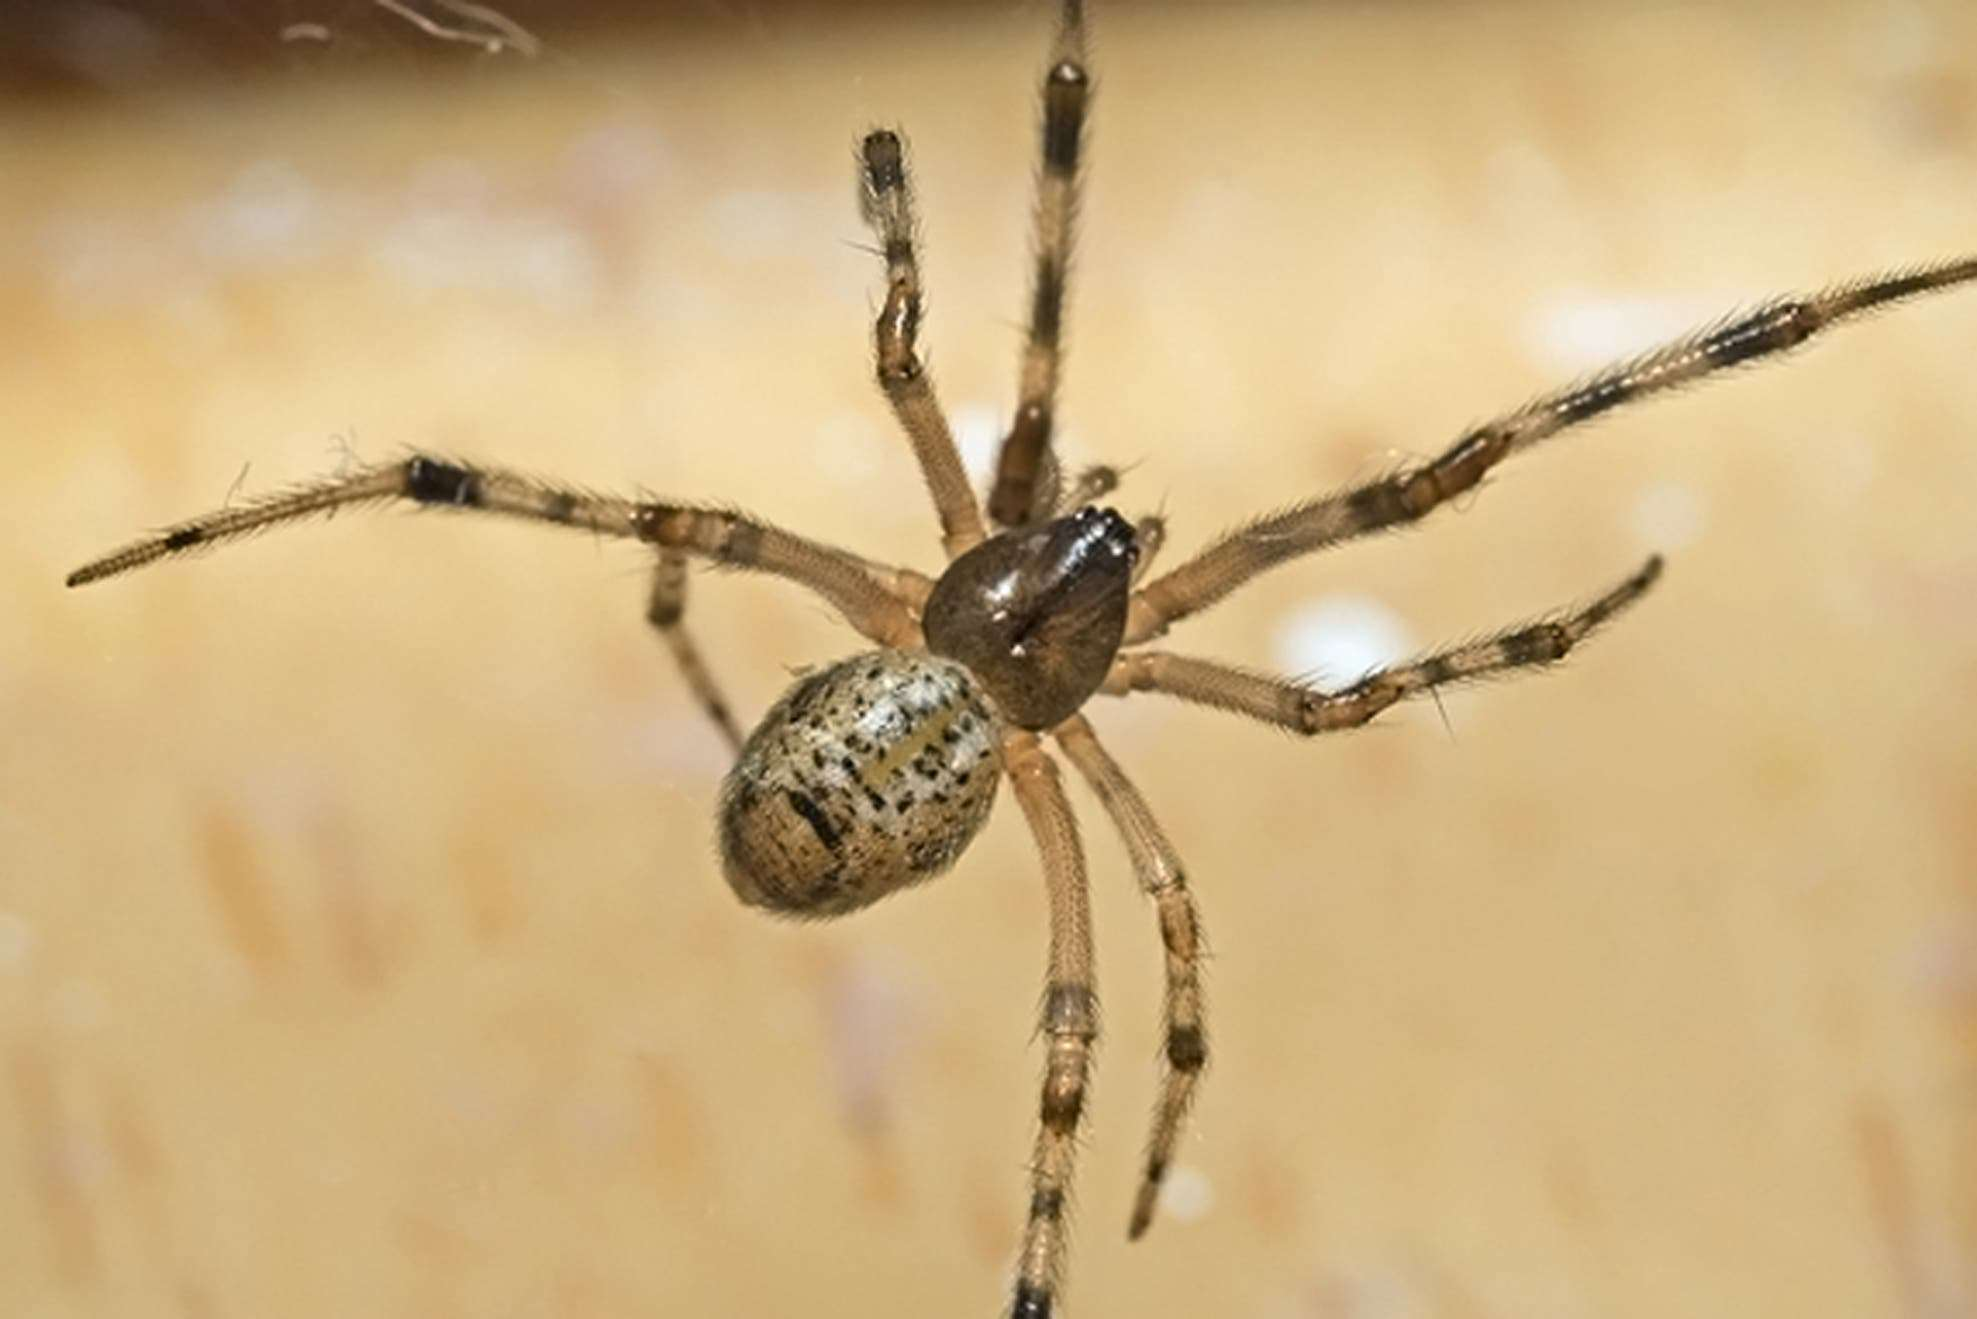 American House Spiders